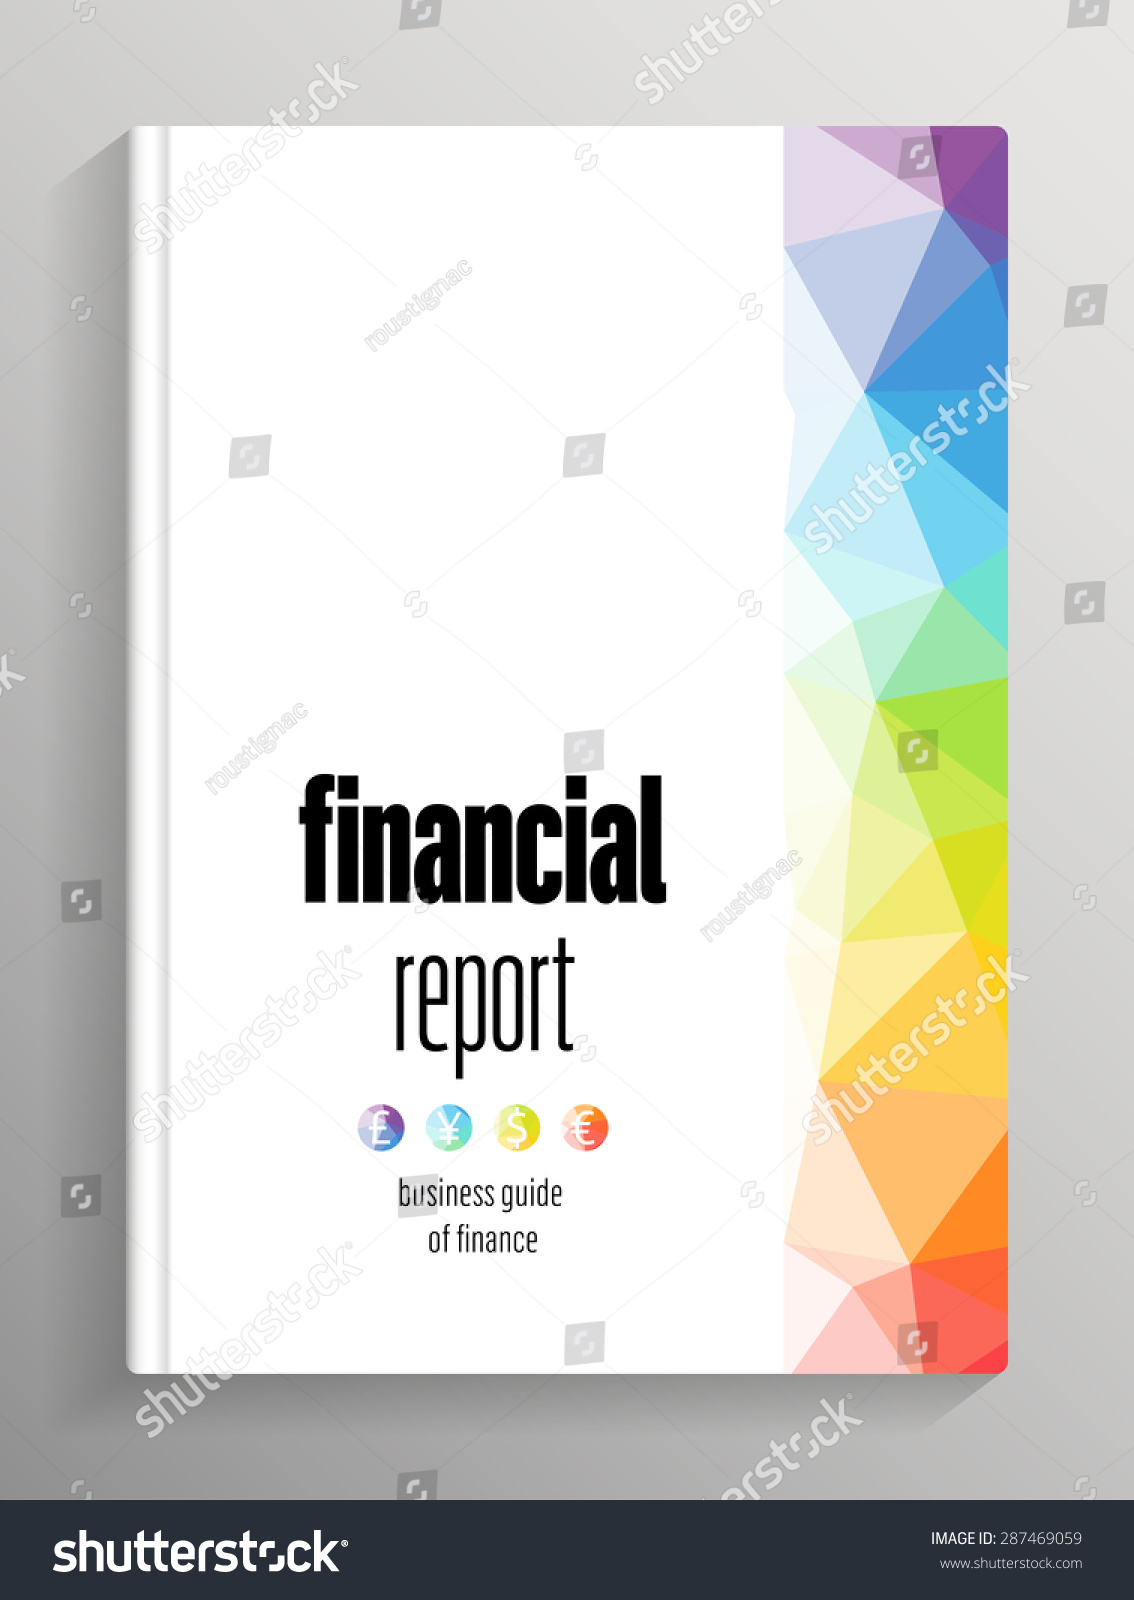 book brochure cover financial report stock vector 287469059 book brochure cover financial report